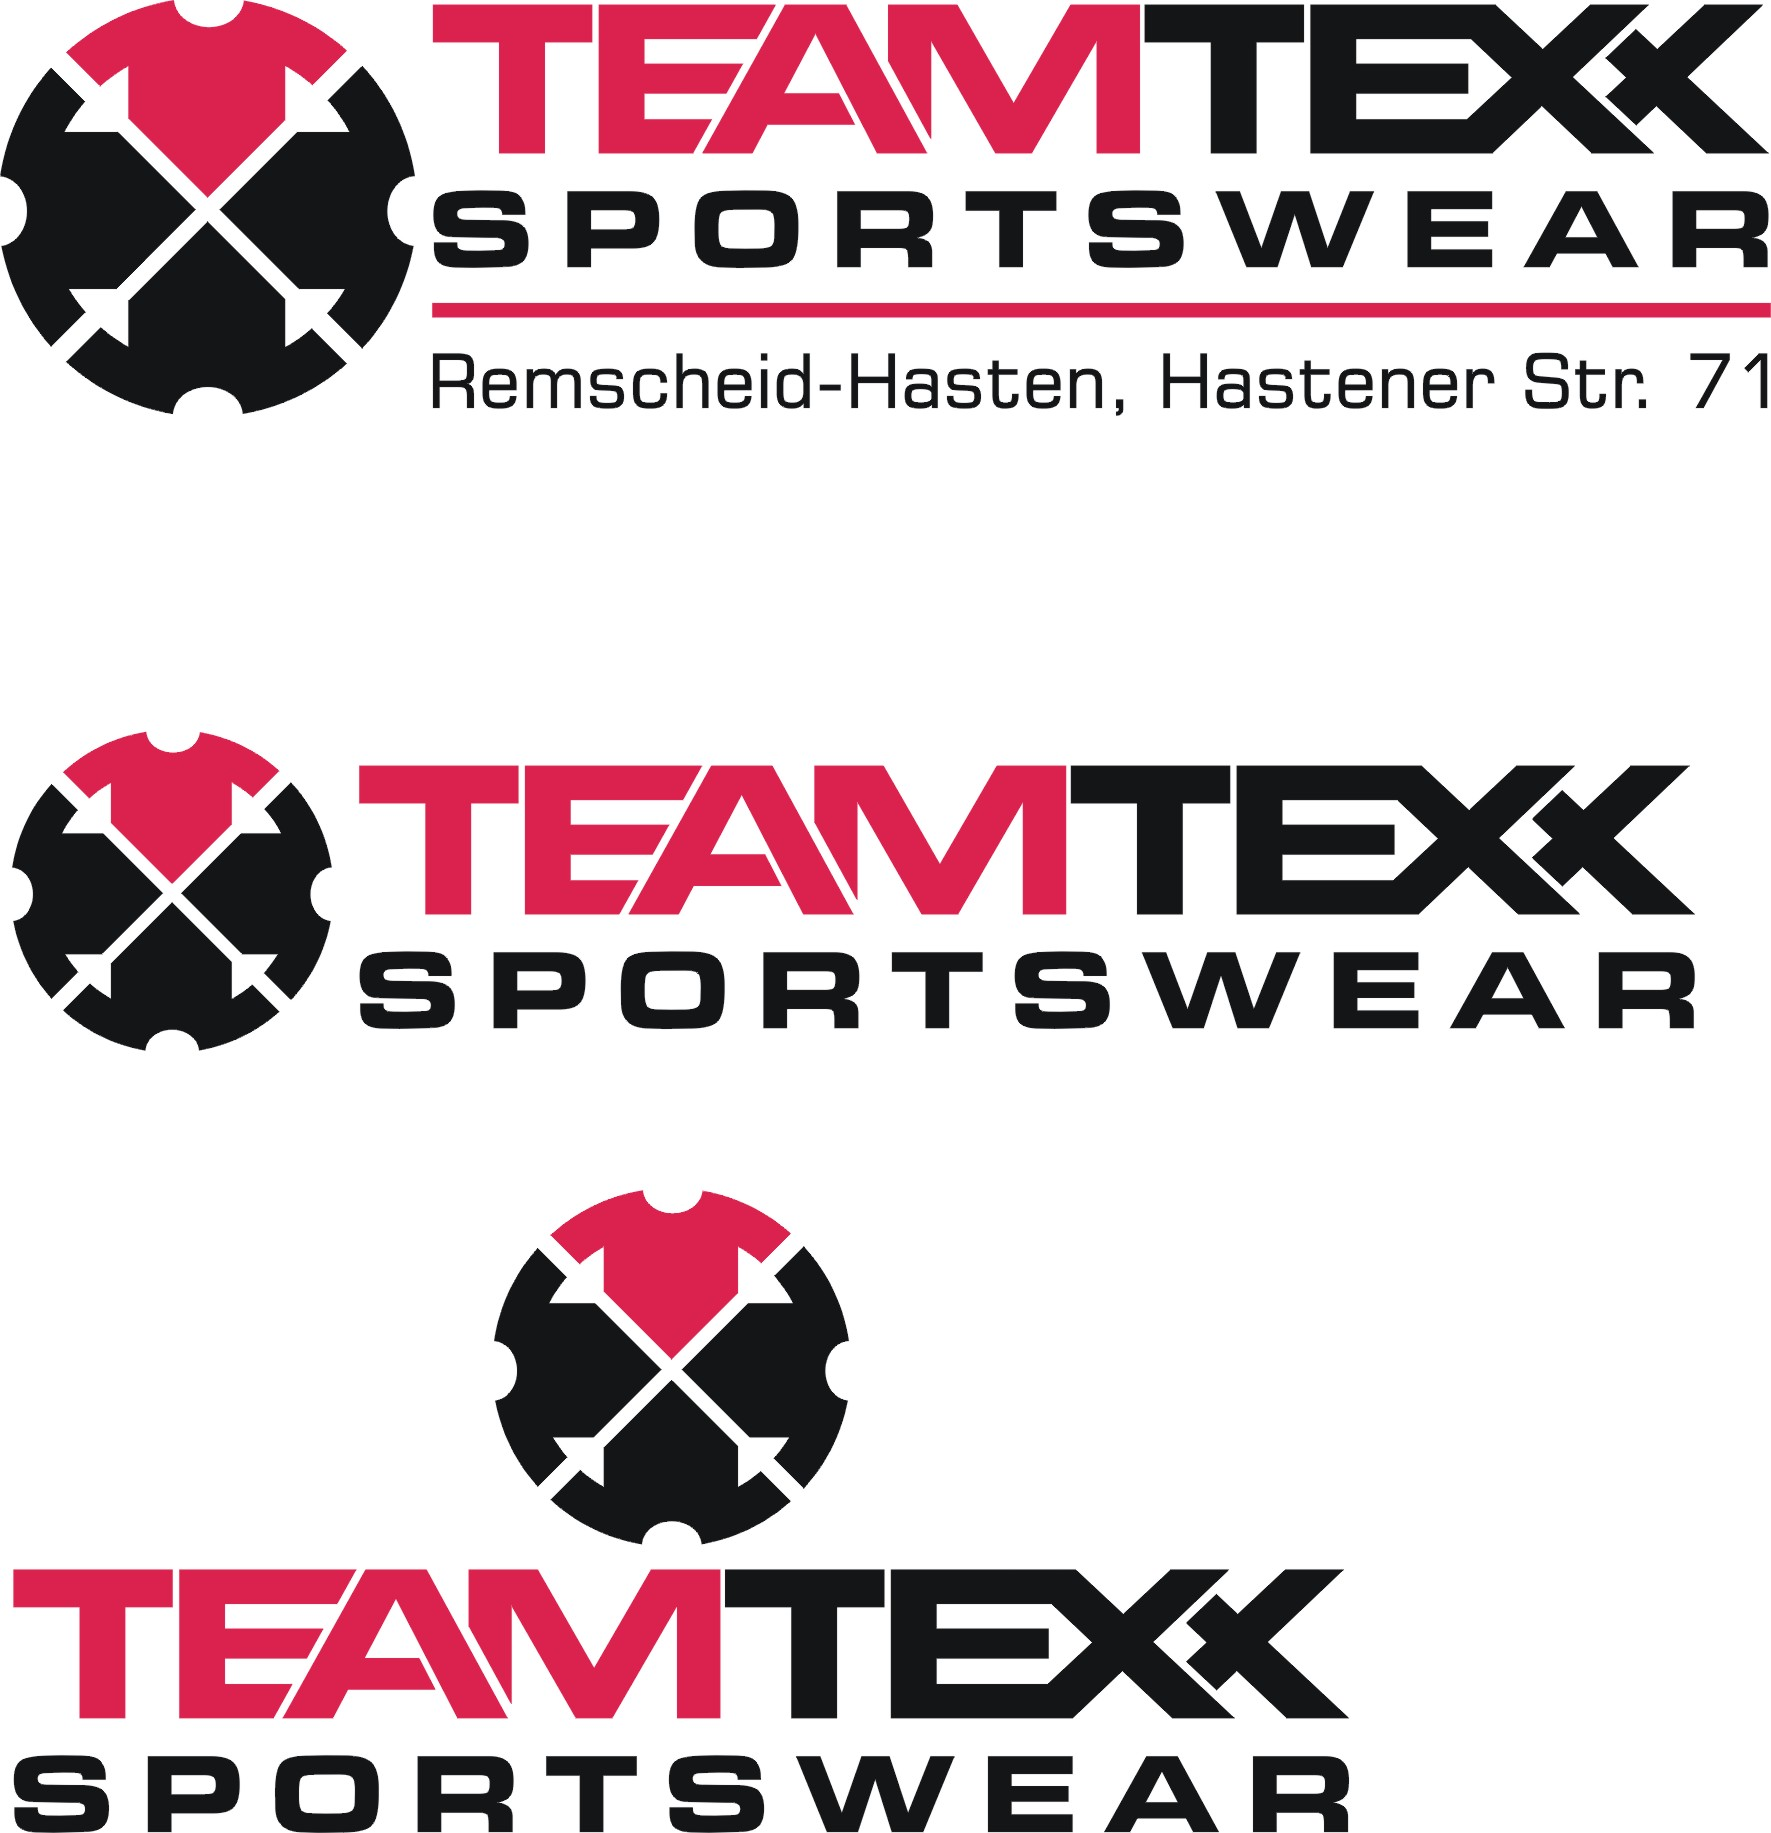 Teamtexx, Christiane Schöbel, Remscheid-Hasten